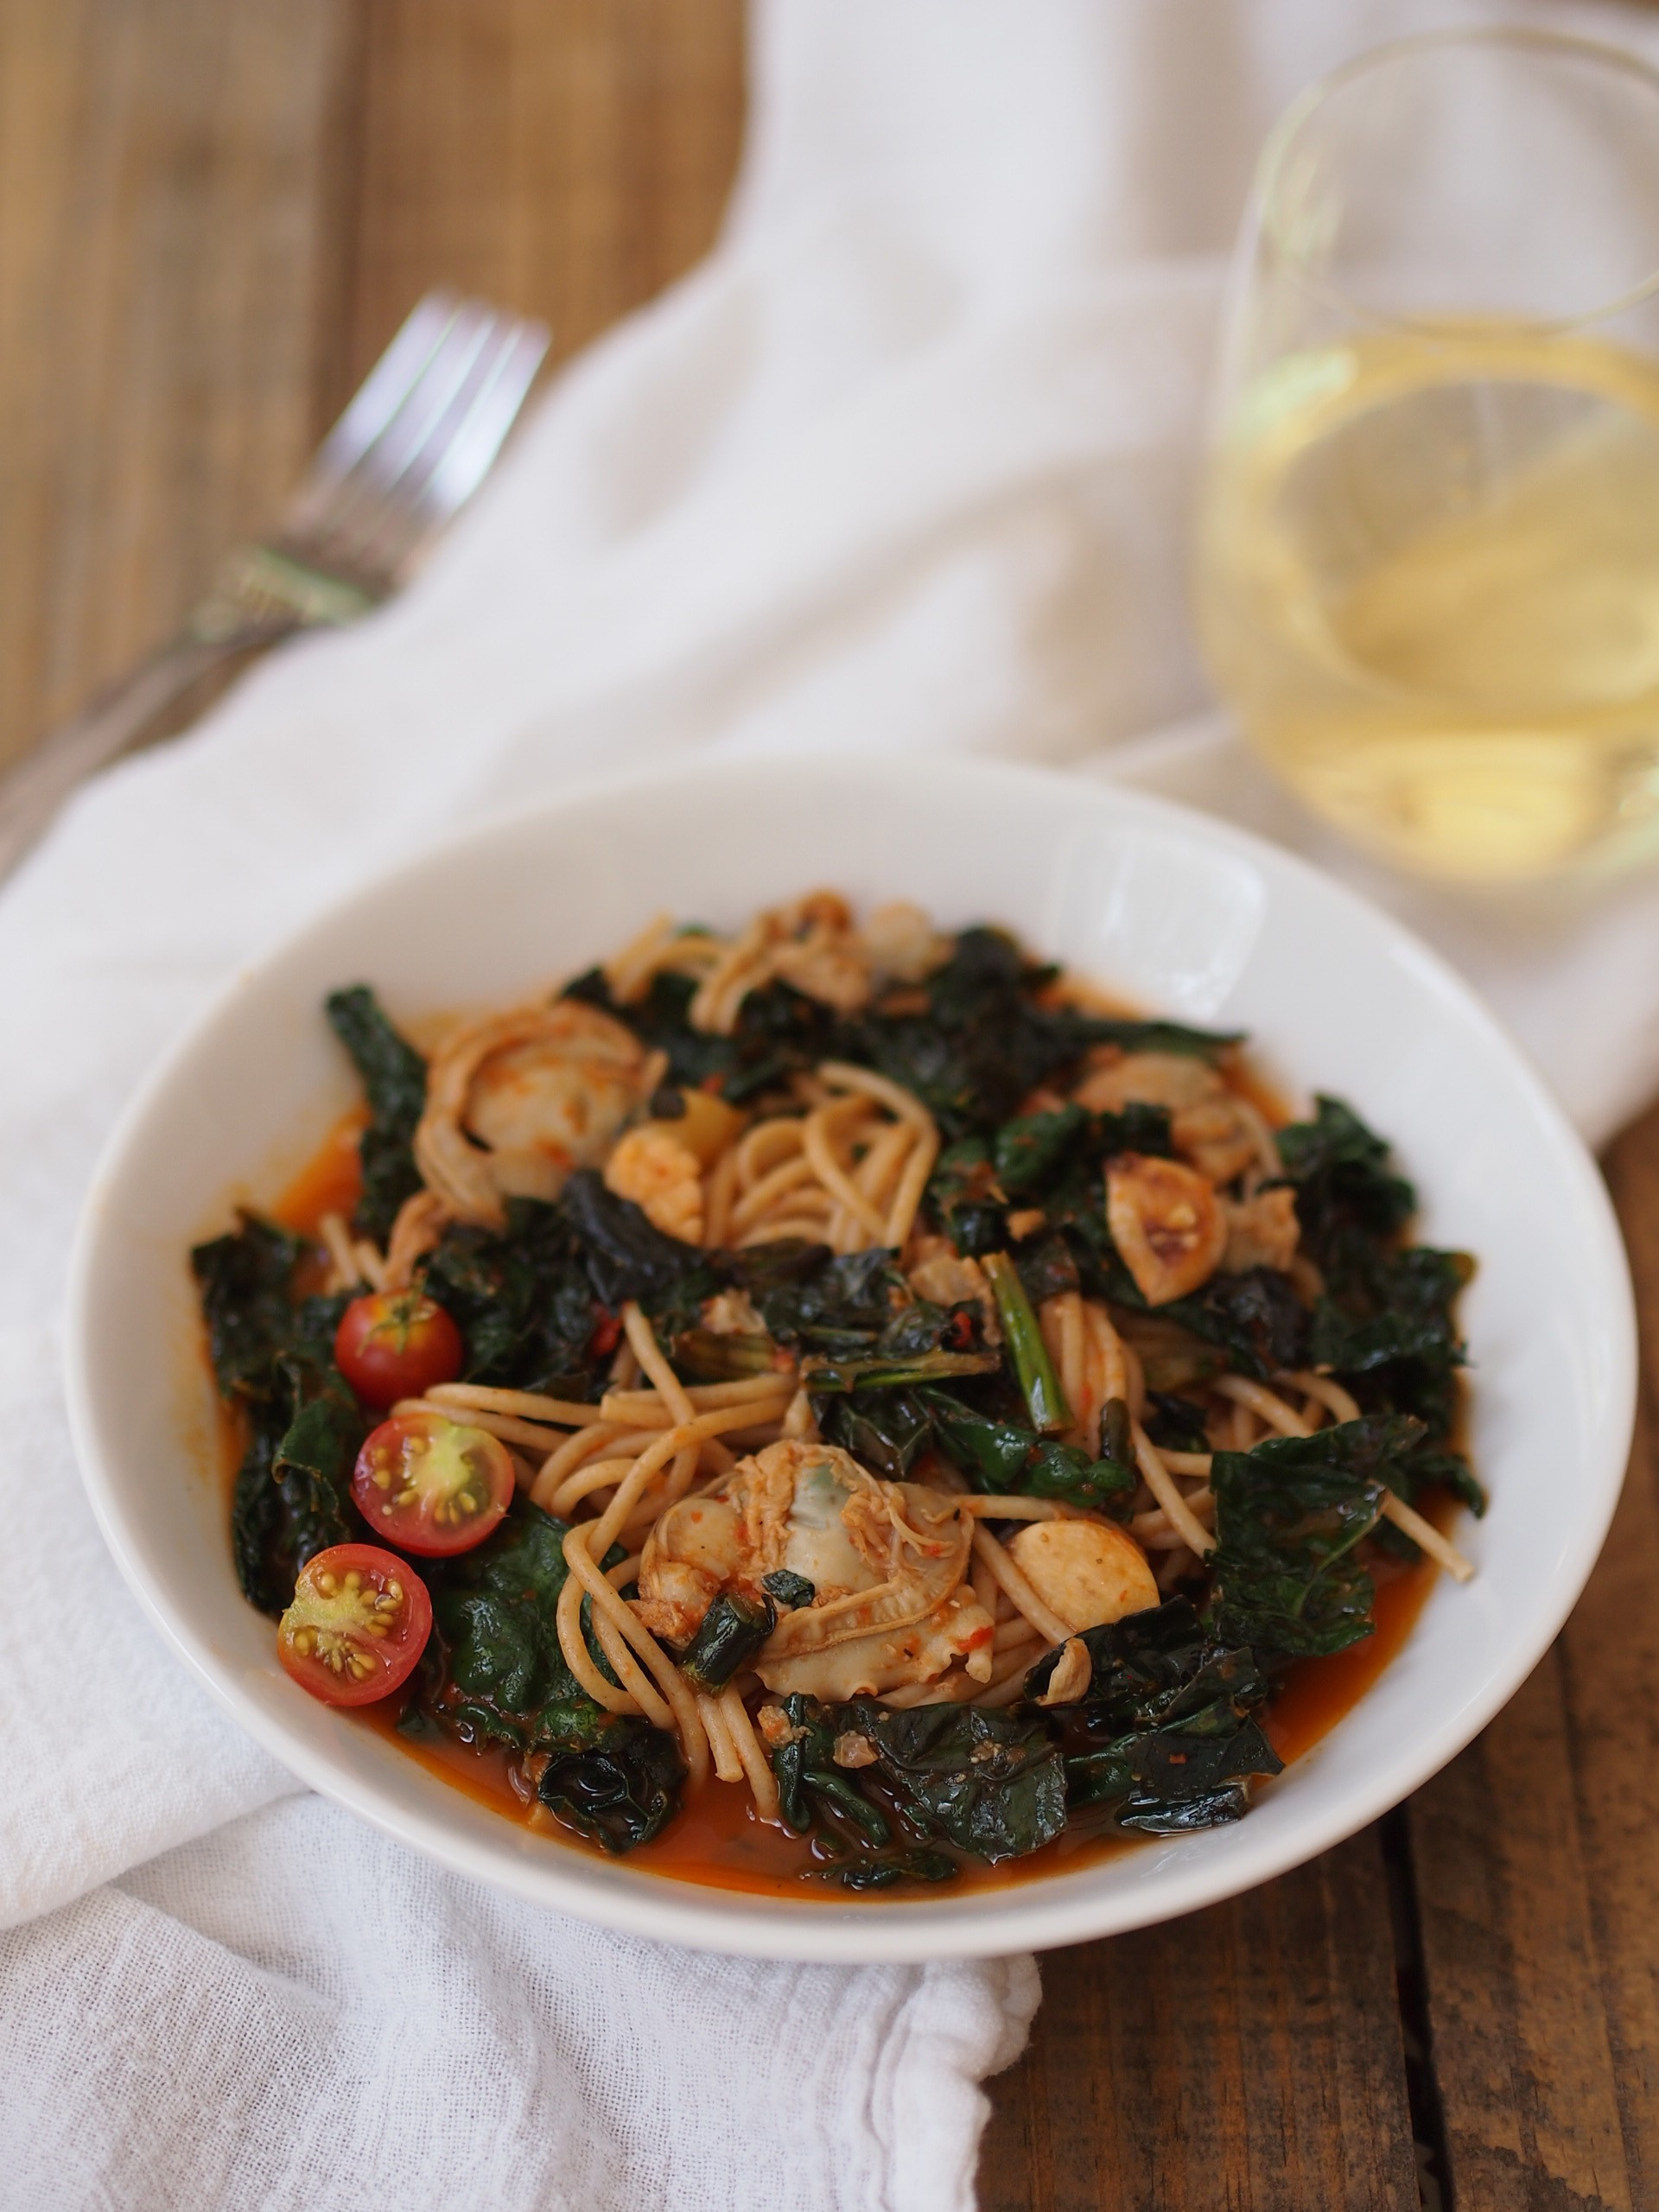 Spaghetti in Clam Sauce with Braised Kale